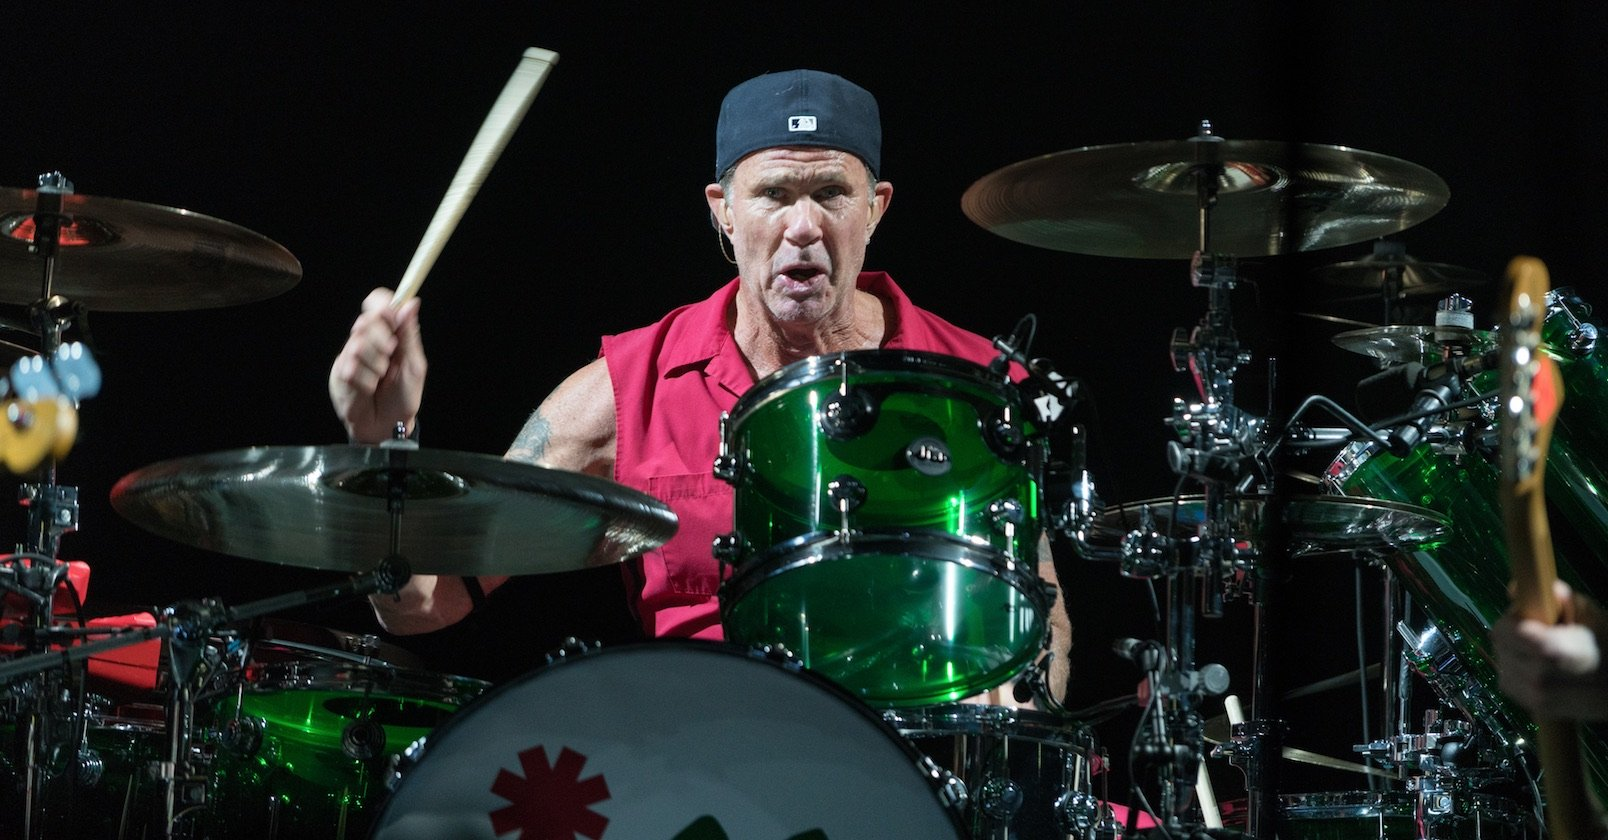 Red Hot Chili Peppers – Viel Live-Spaß mit den Chili Peppers in der Hauptstadt. – Part of Drum History: Chad Smith.